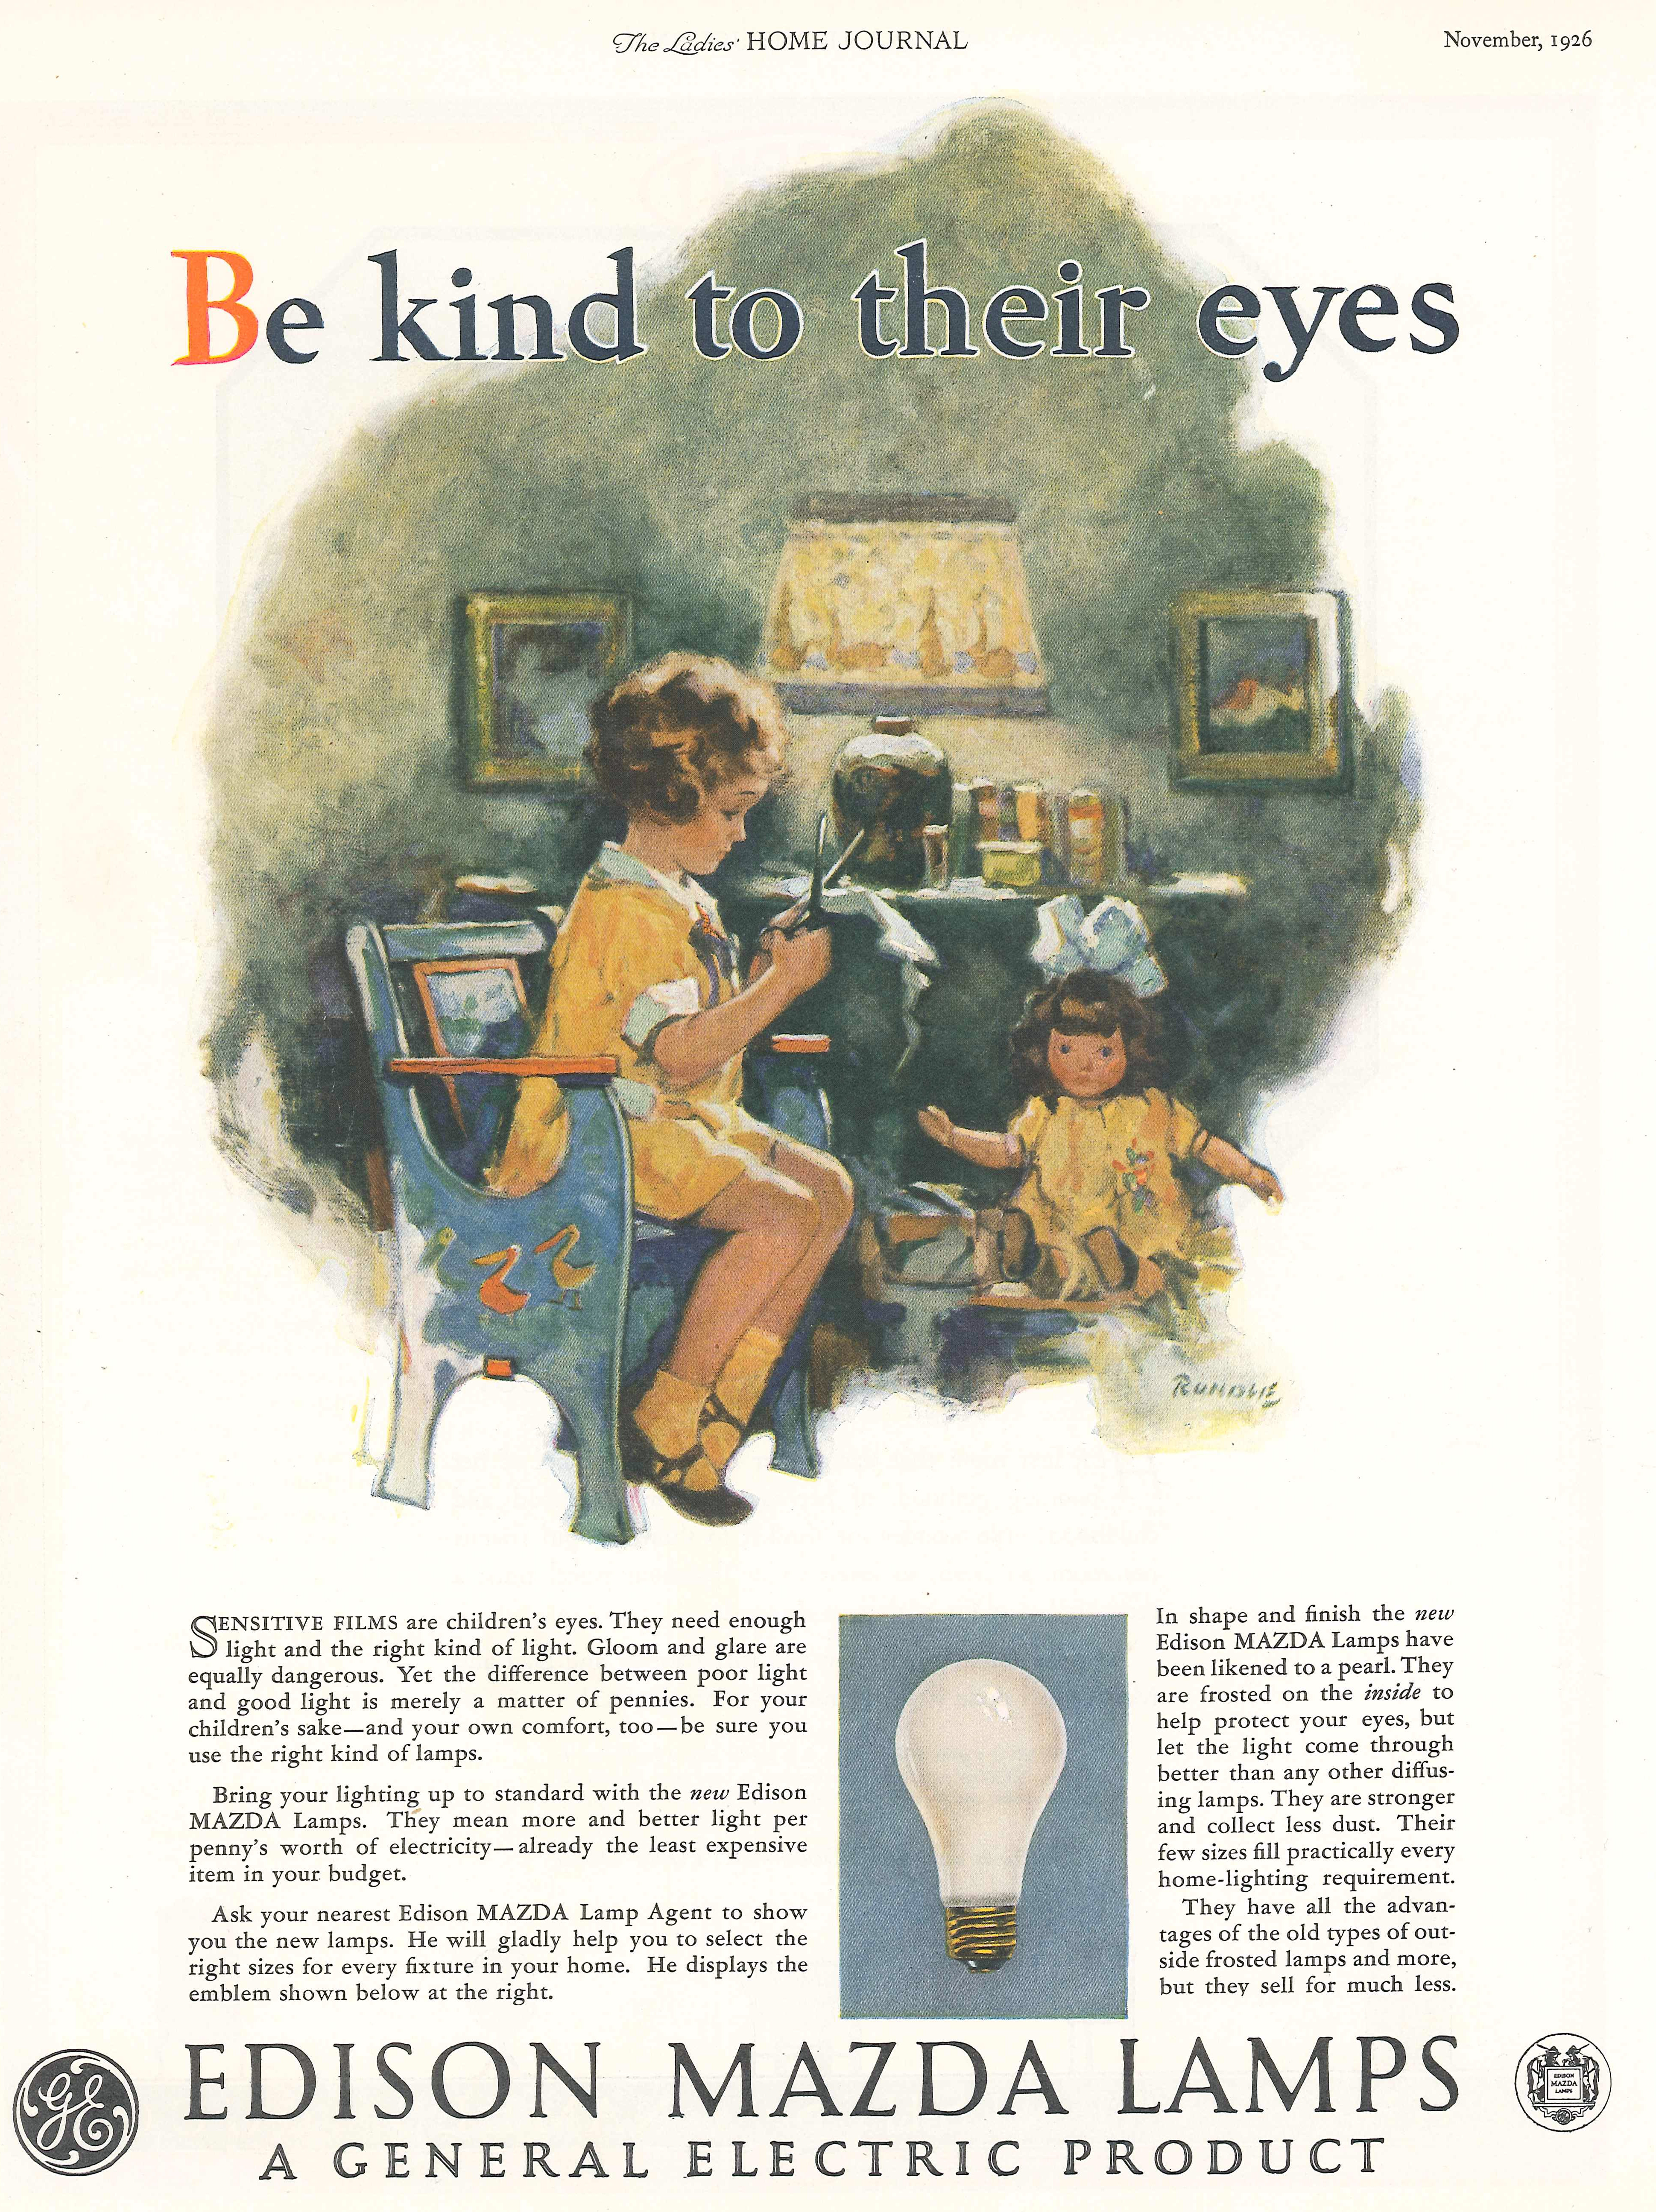 Image of General Electric Advertisement for Edison Mazda Lamp